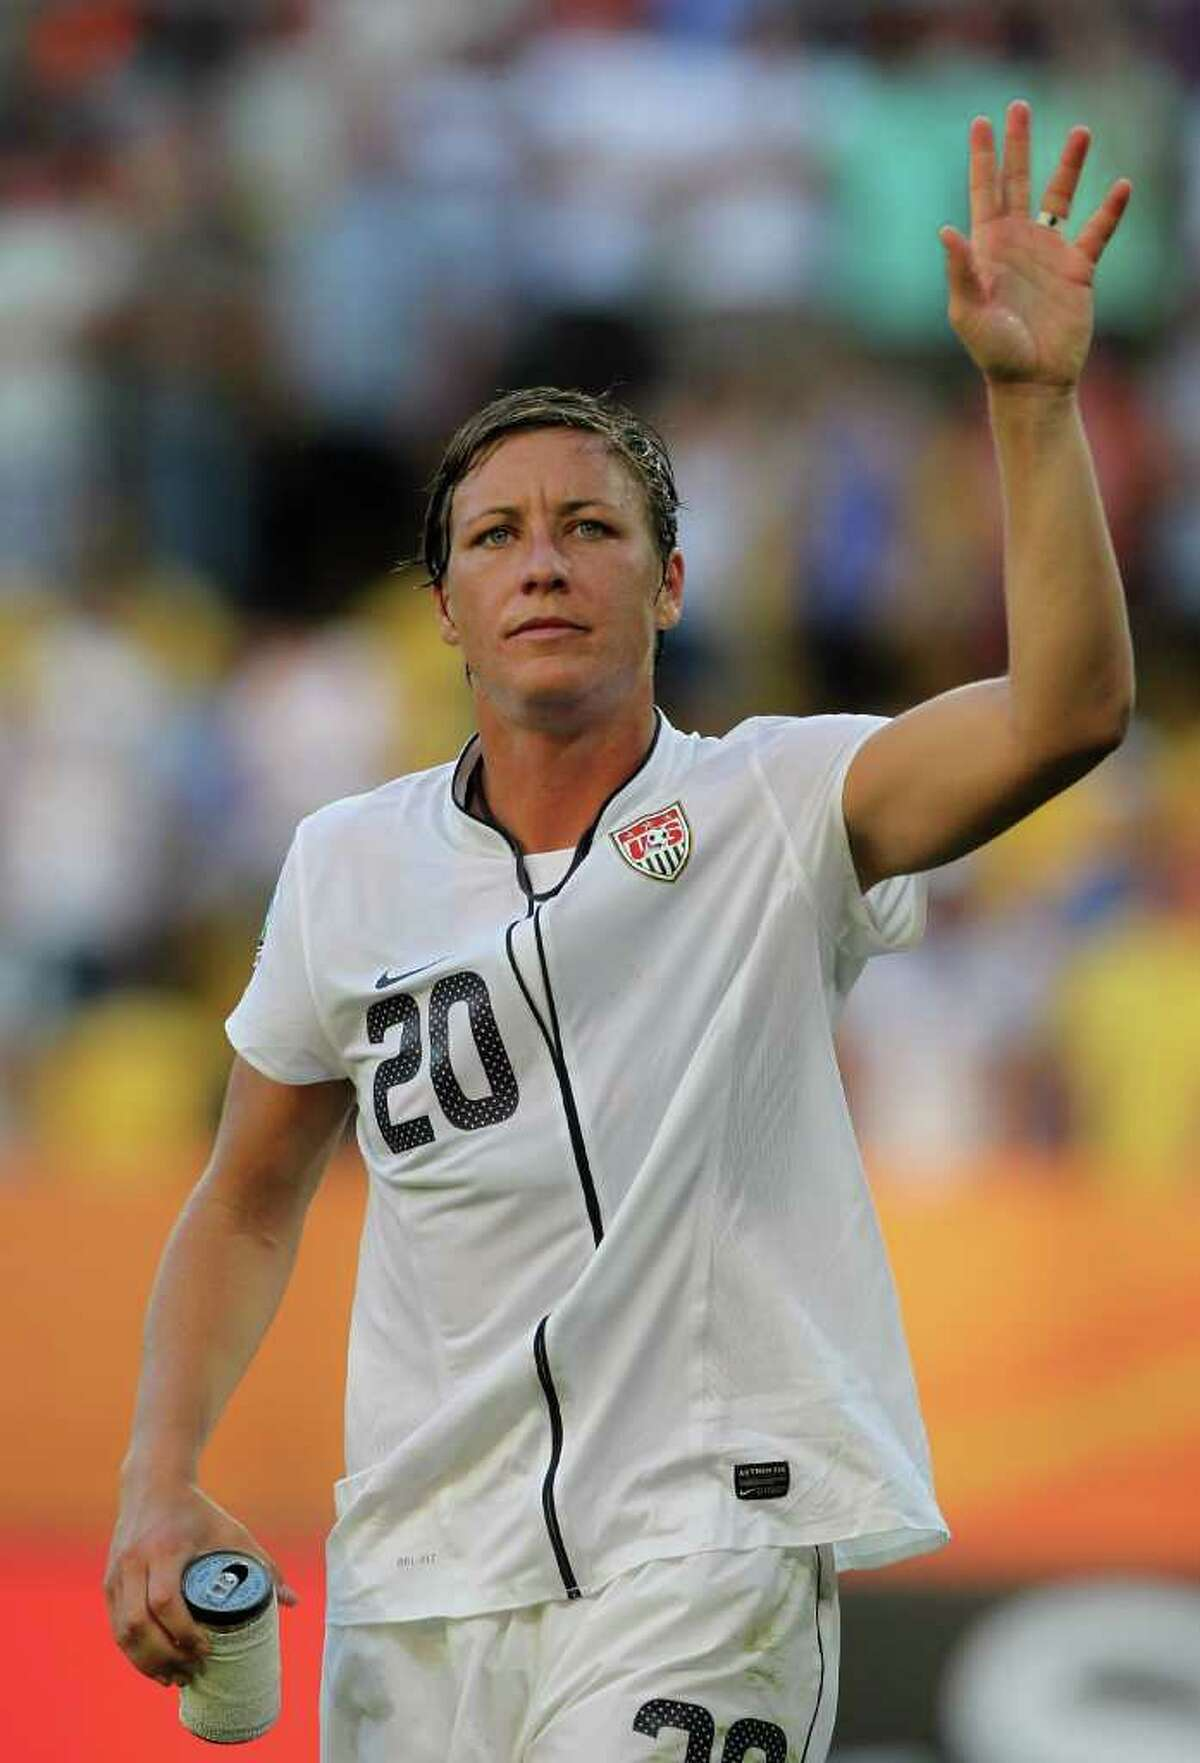 DRESDEN, GERMANY - JUNE 28: Abby Wambach of USA waves to her fans after winning the FIFA Women's World Cup Group C match between USA and Korea at Rudolf-Harbig-Stadion on June 28, 2011 in Dresden, Germany. (Photo by Boris Streubel/Getty Images)